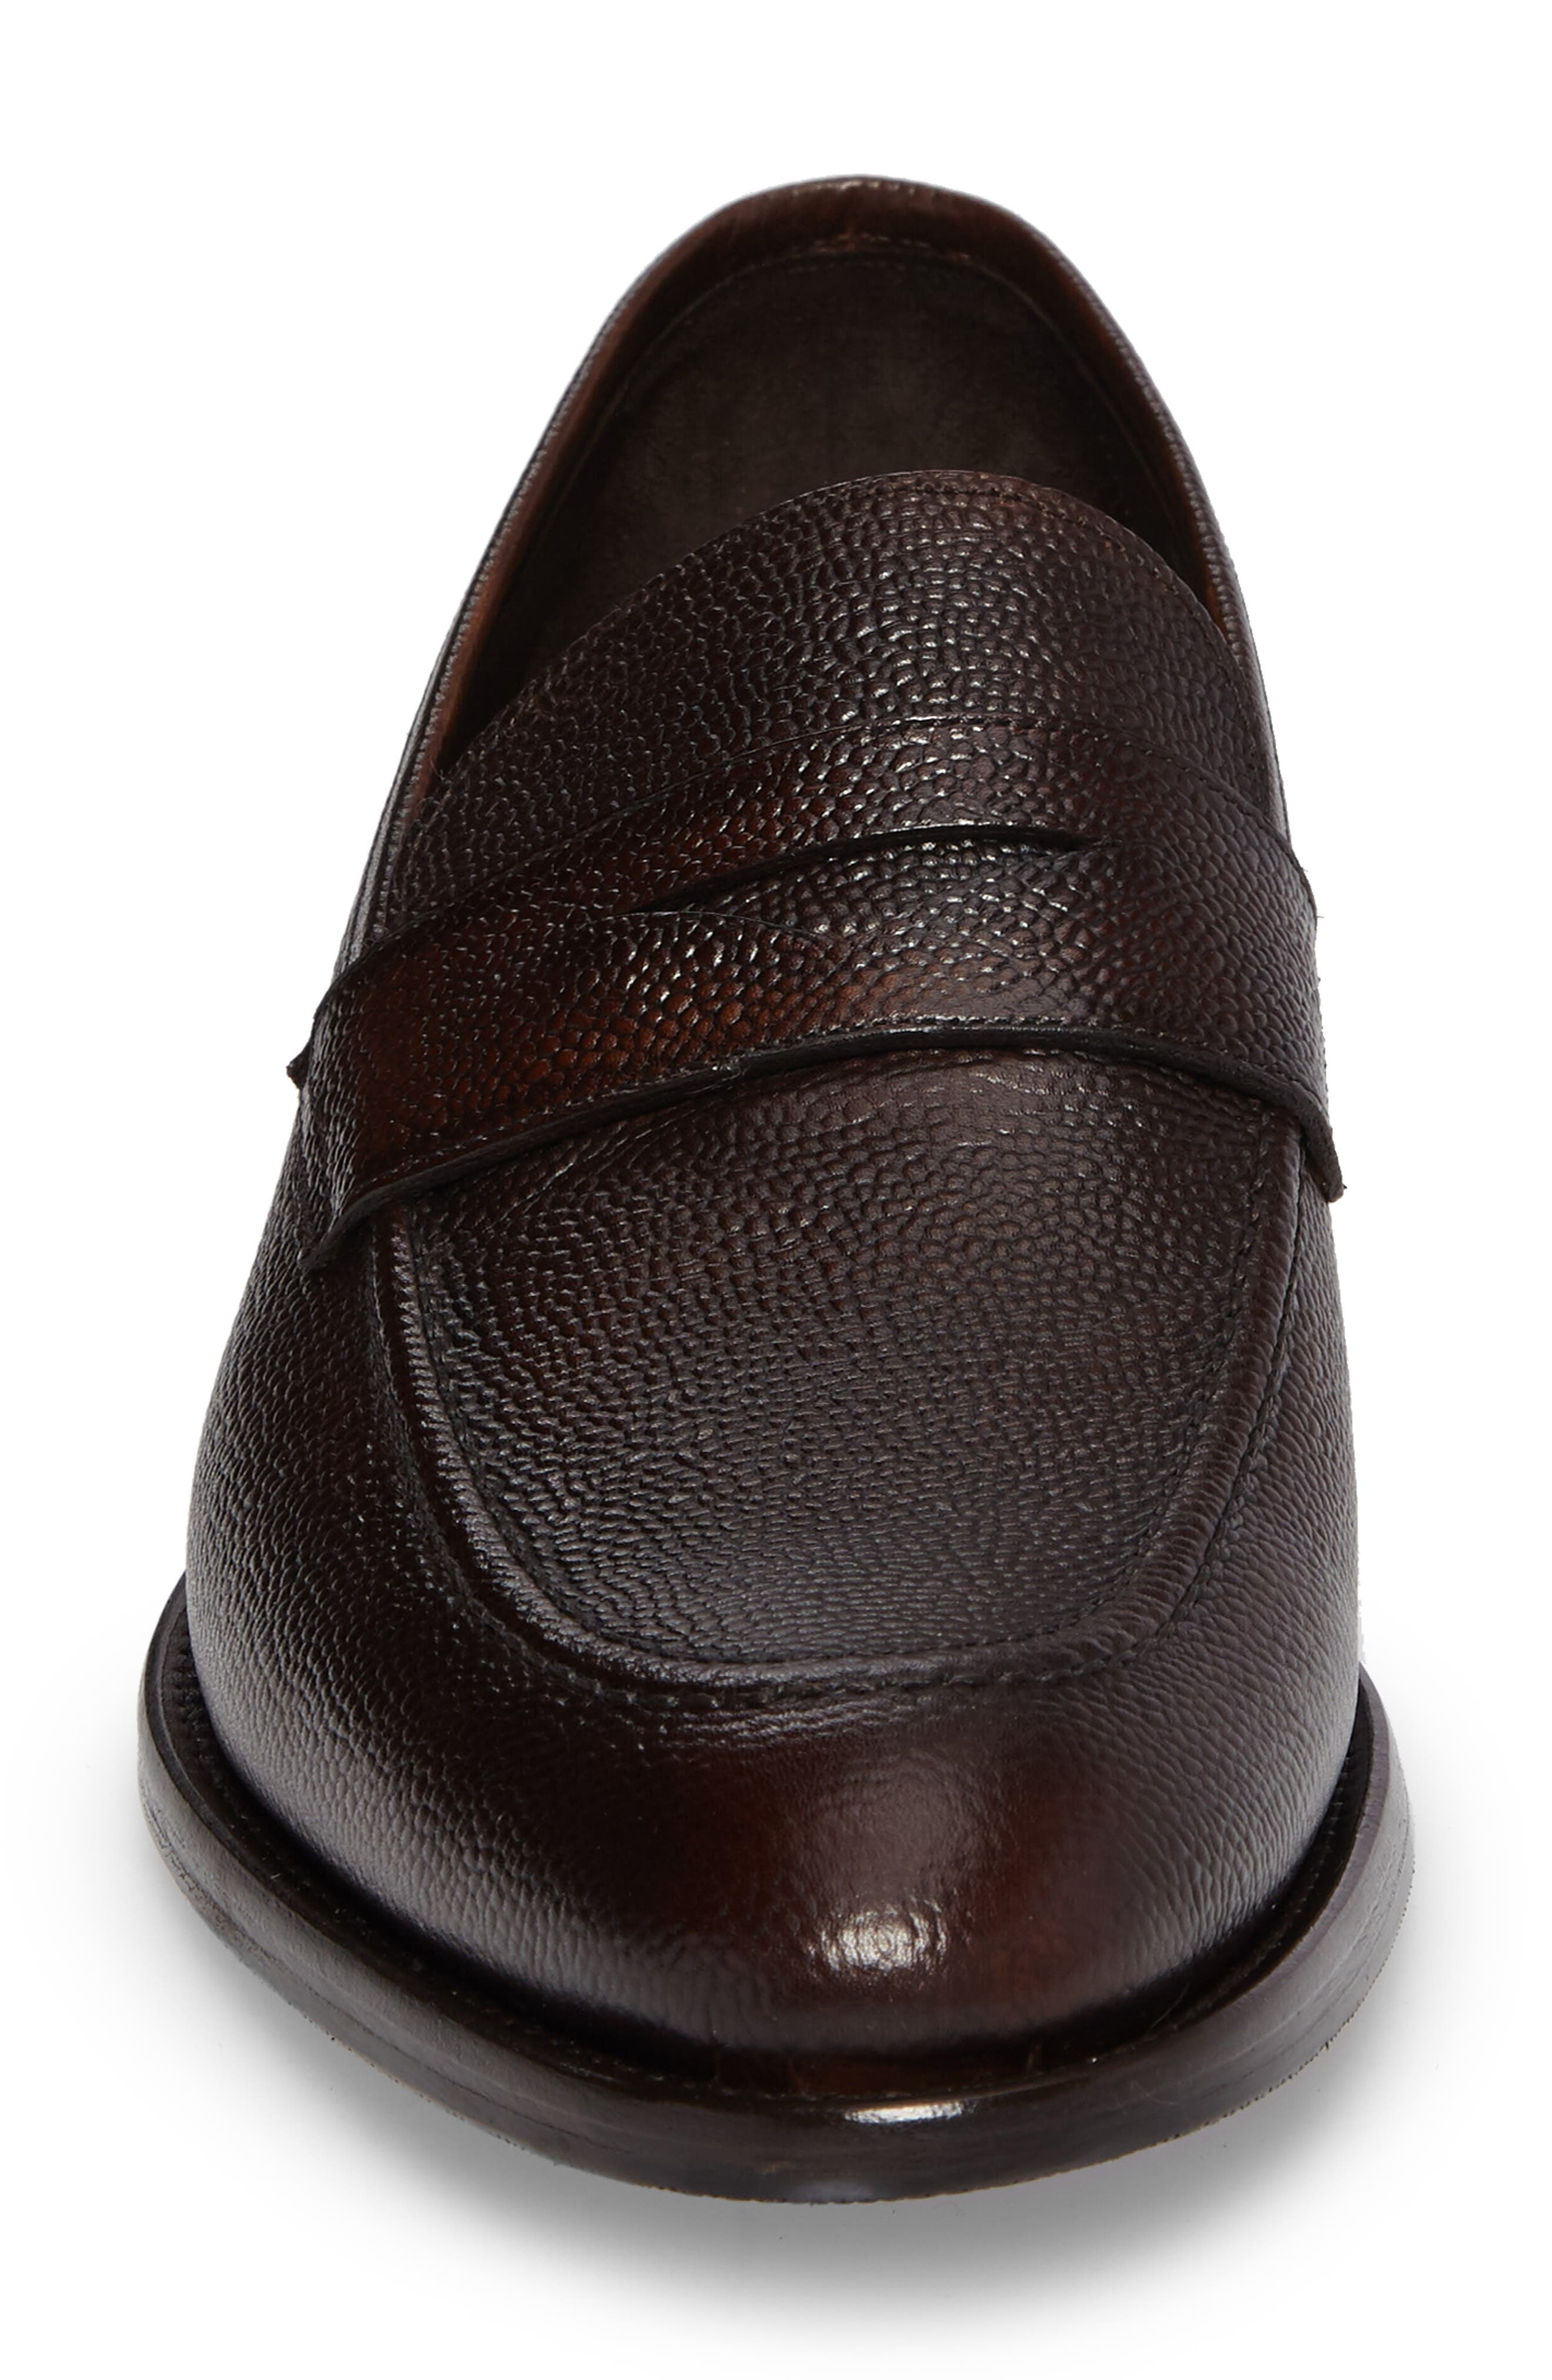 James Penny Loafer,                             Alternate thumbnail 4, color,                             Brown Leather